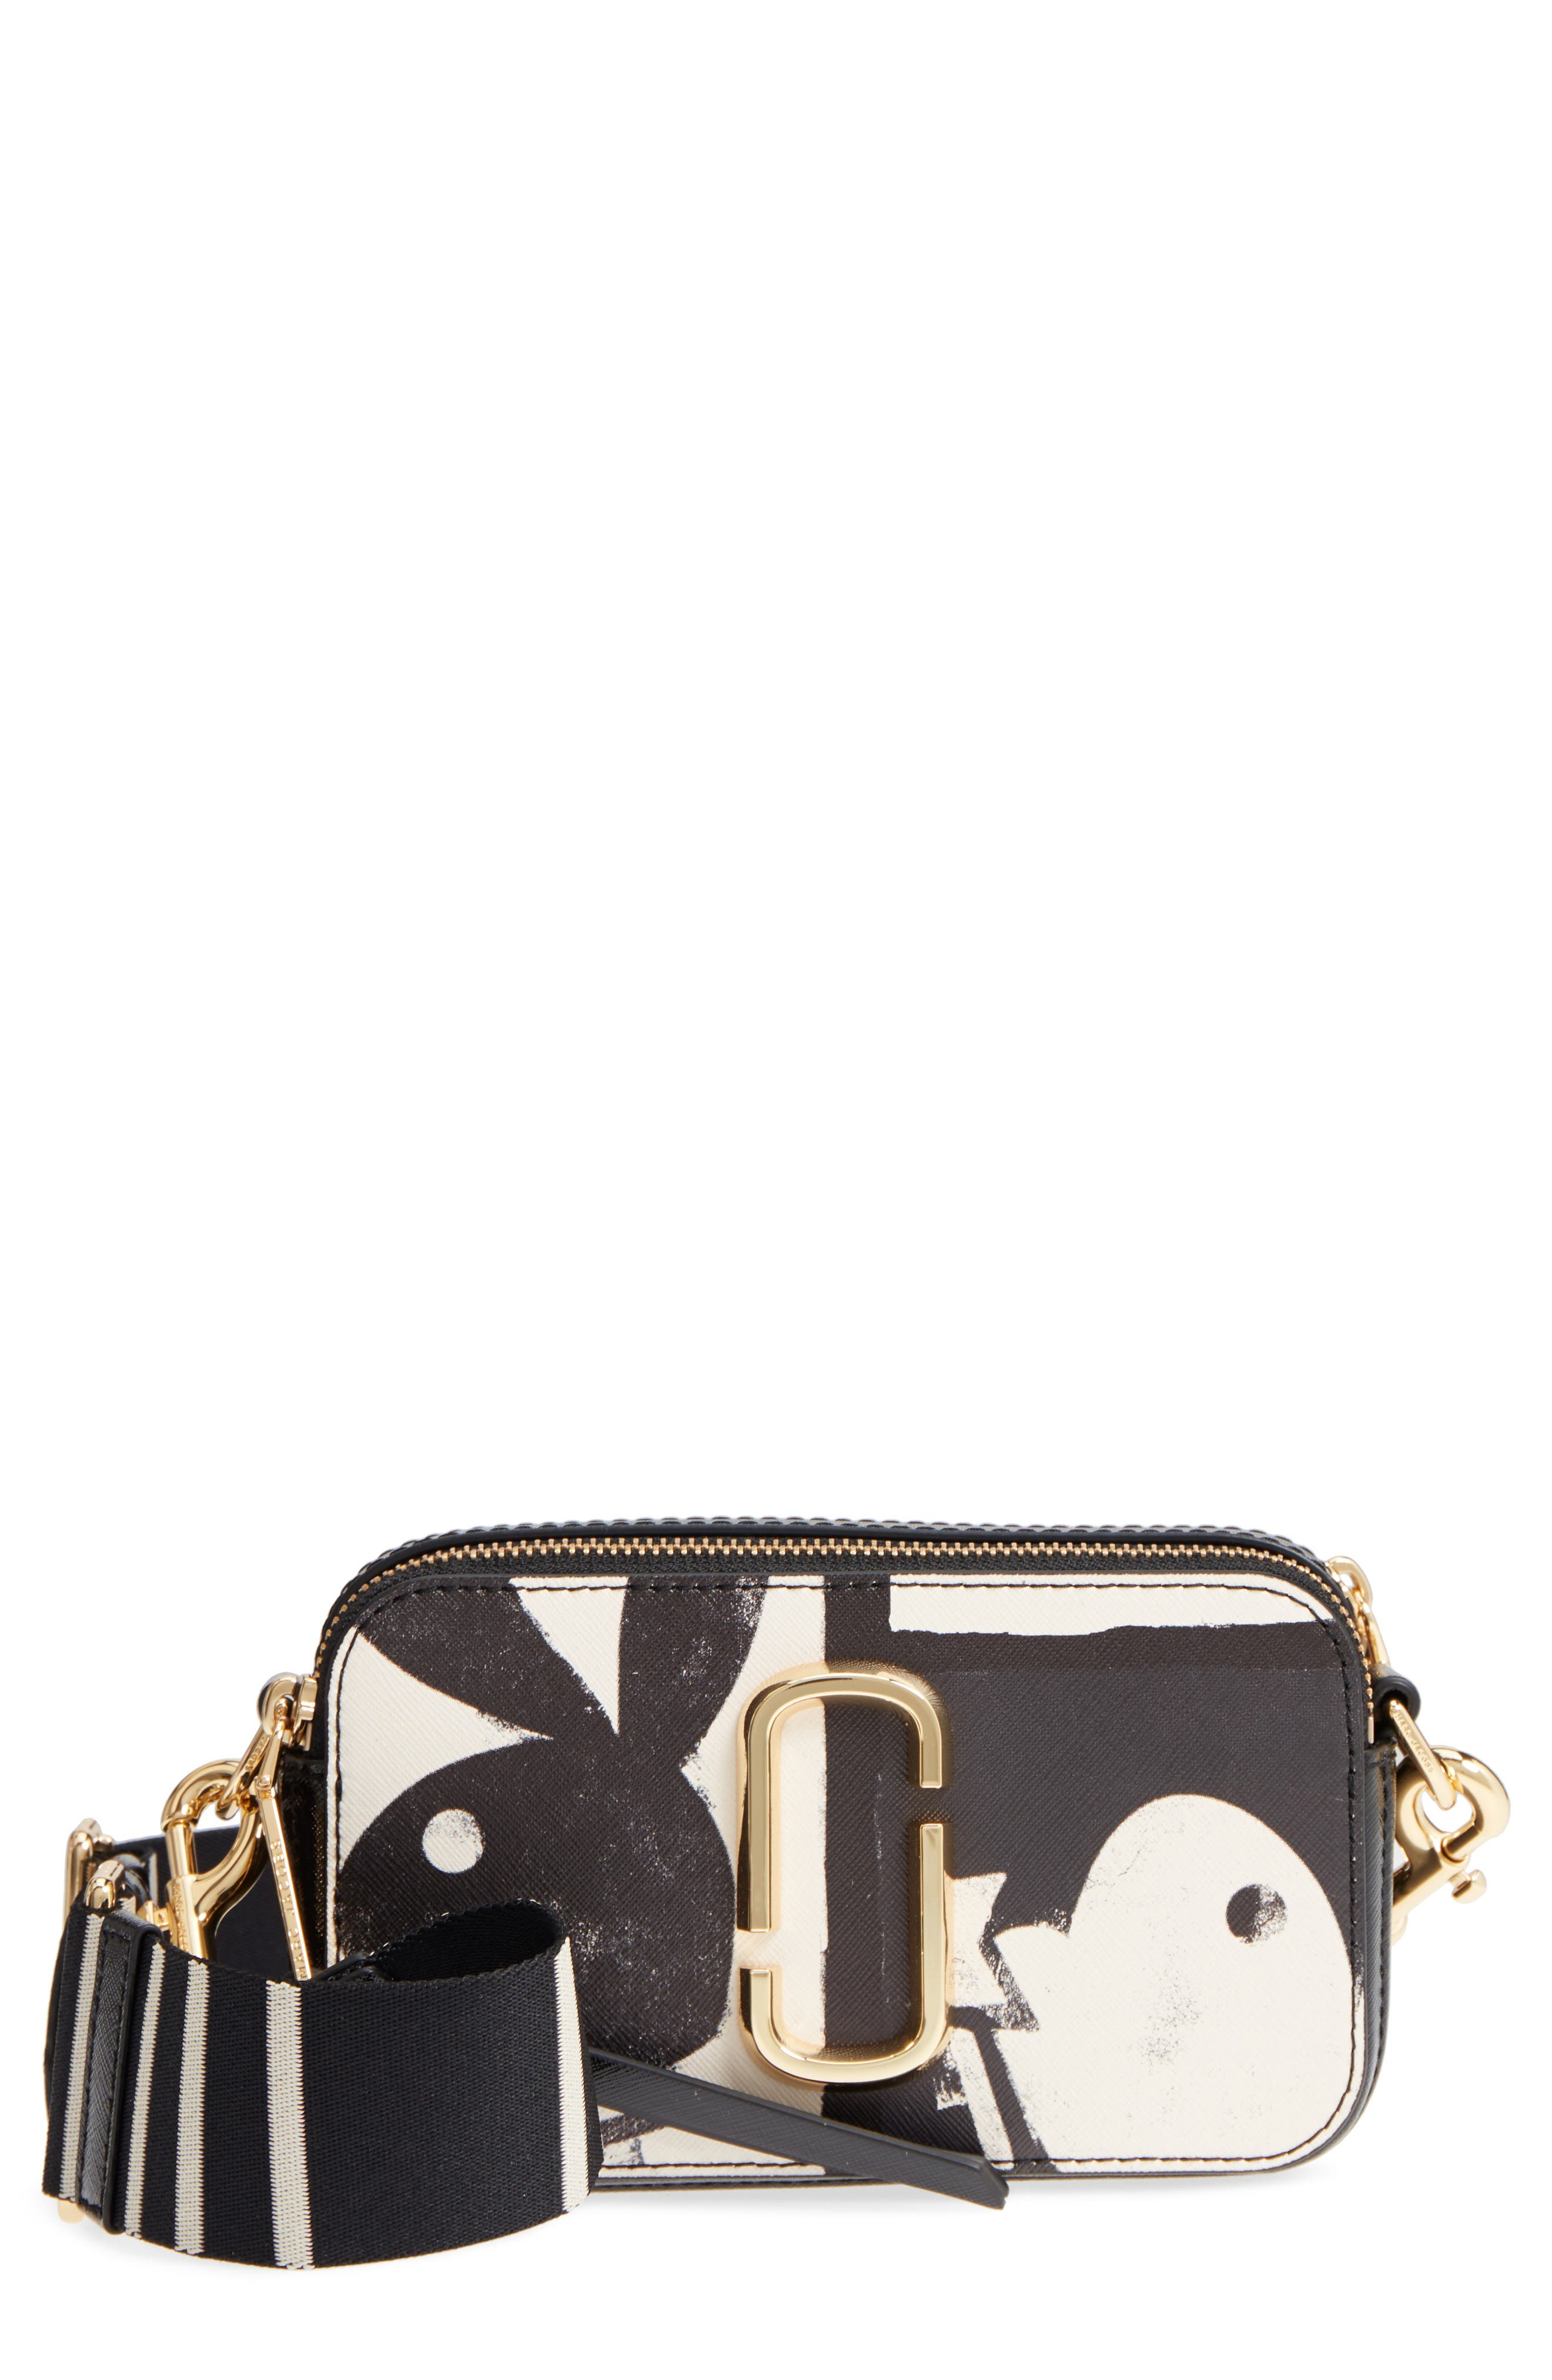 MARC JACOBS Snapshot Playboy® Leather Crossbody Bag